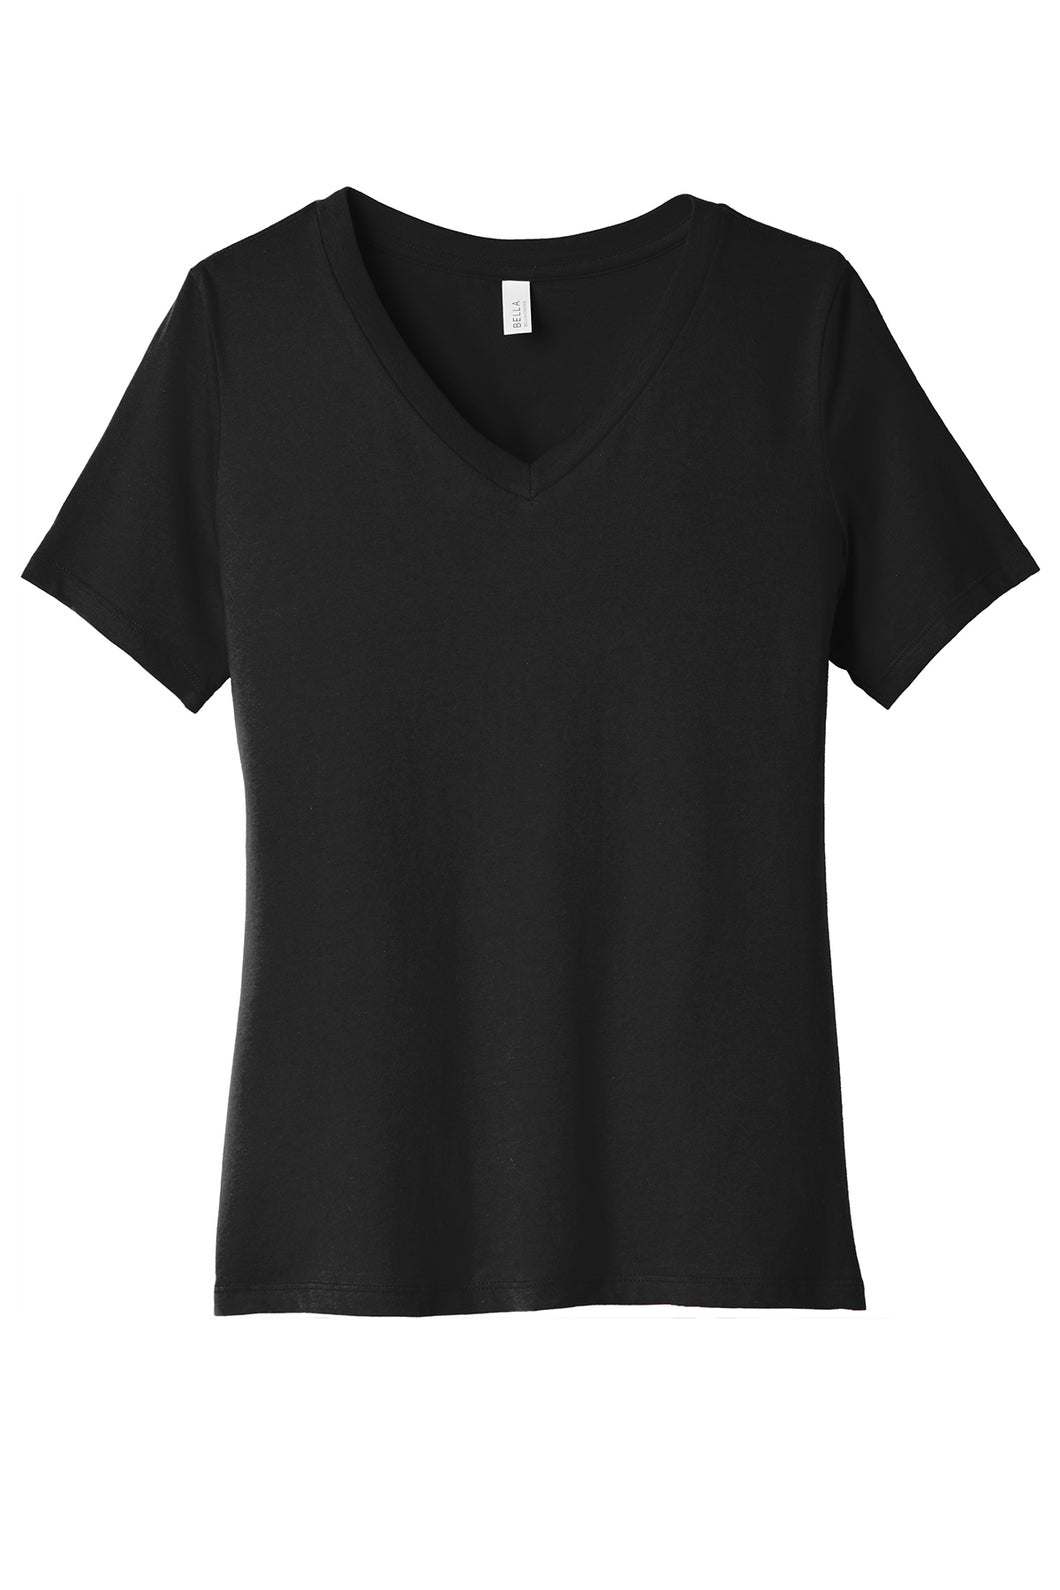 ACS Trap Bella Ladies V-neck Tee